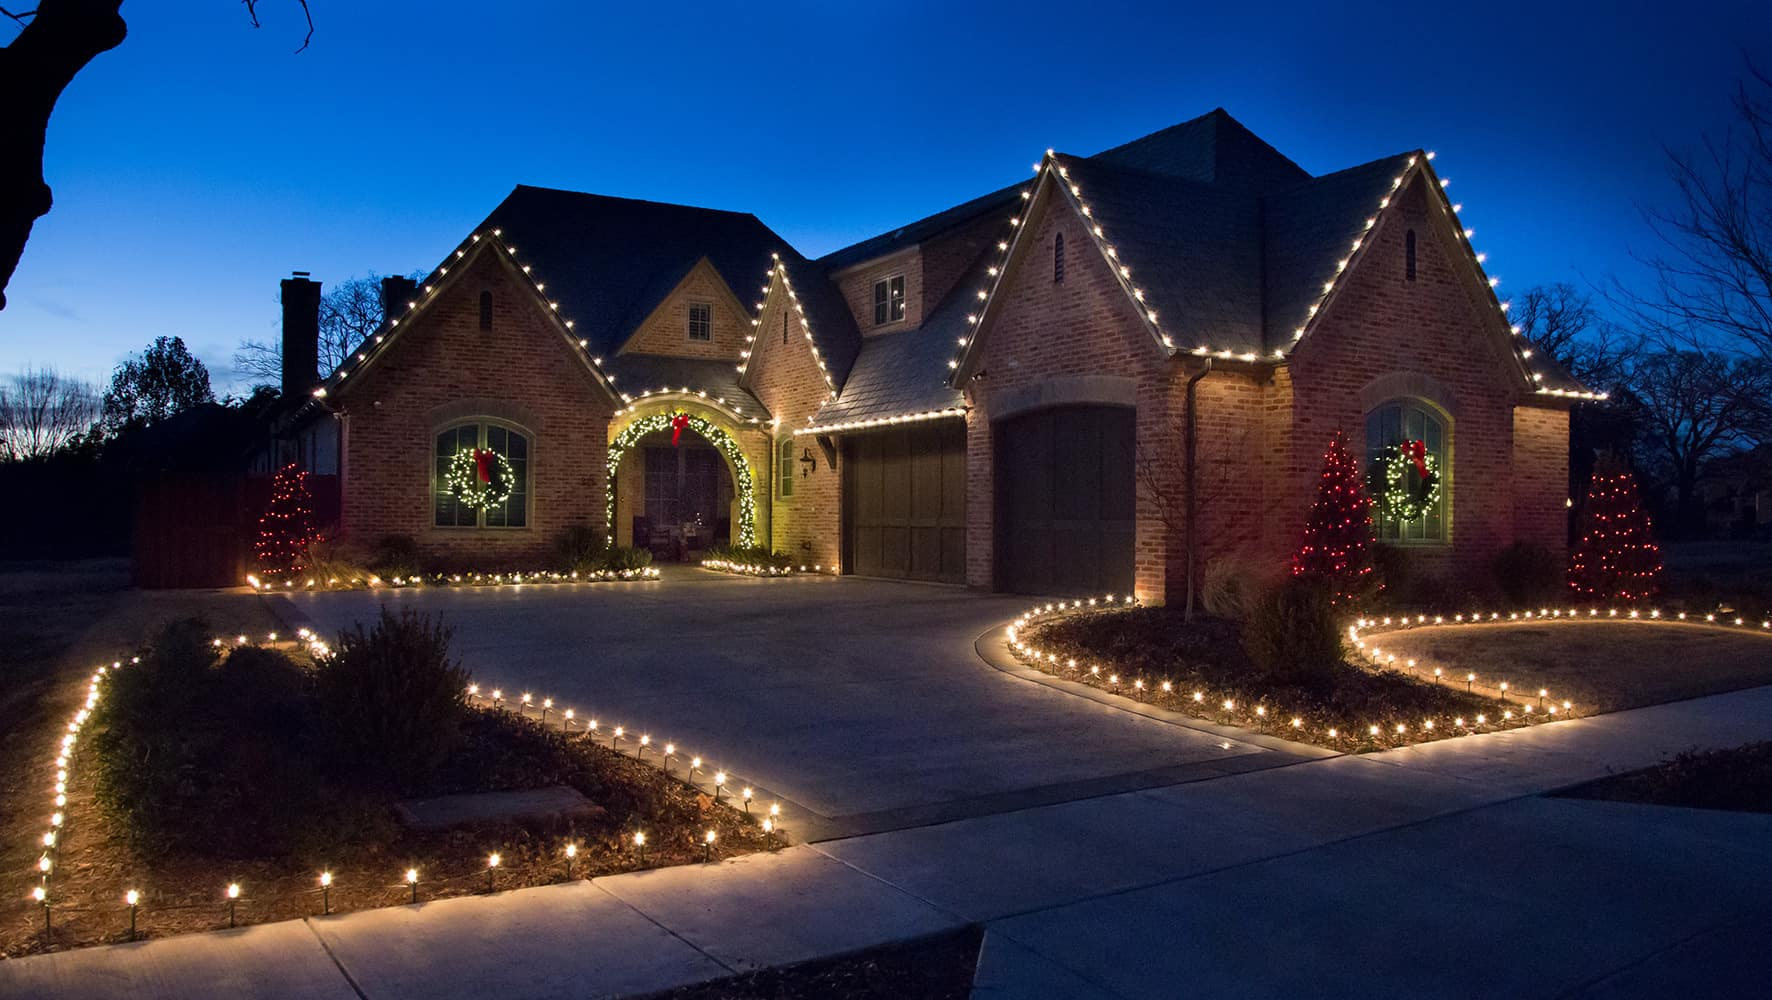 HOW TO START A CHRISTMAS LIGHT INSTALLATION BUSINESS